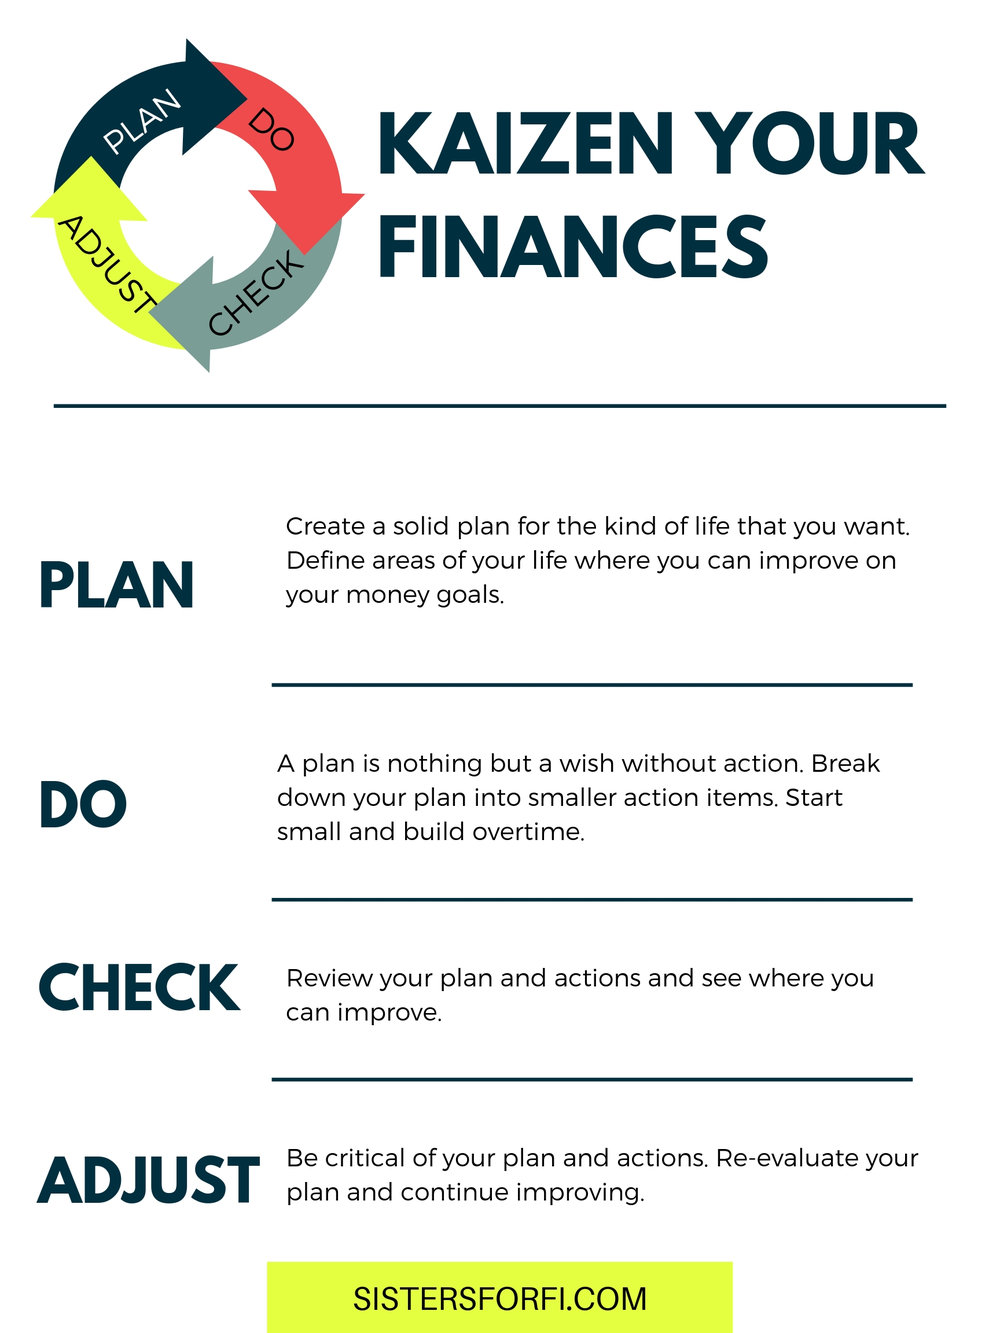 sisters-for-fi-kaizen-your-finances.jpg